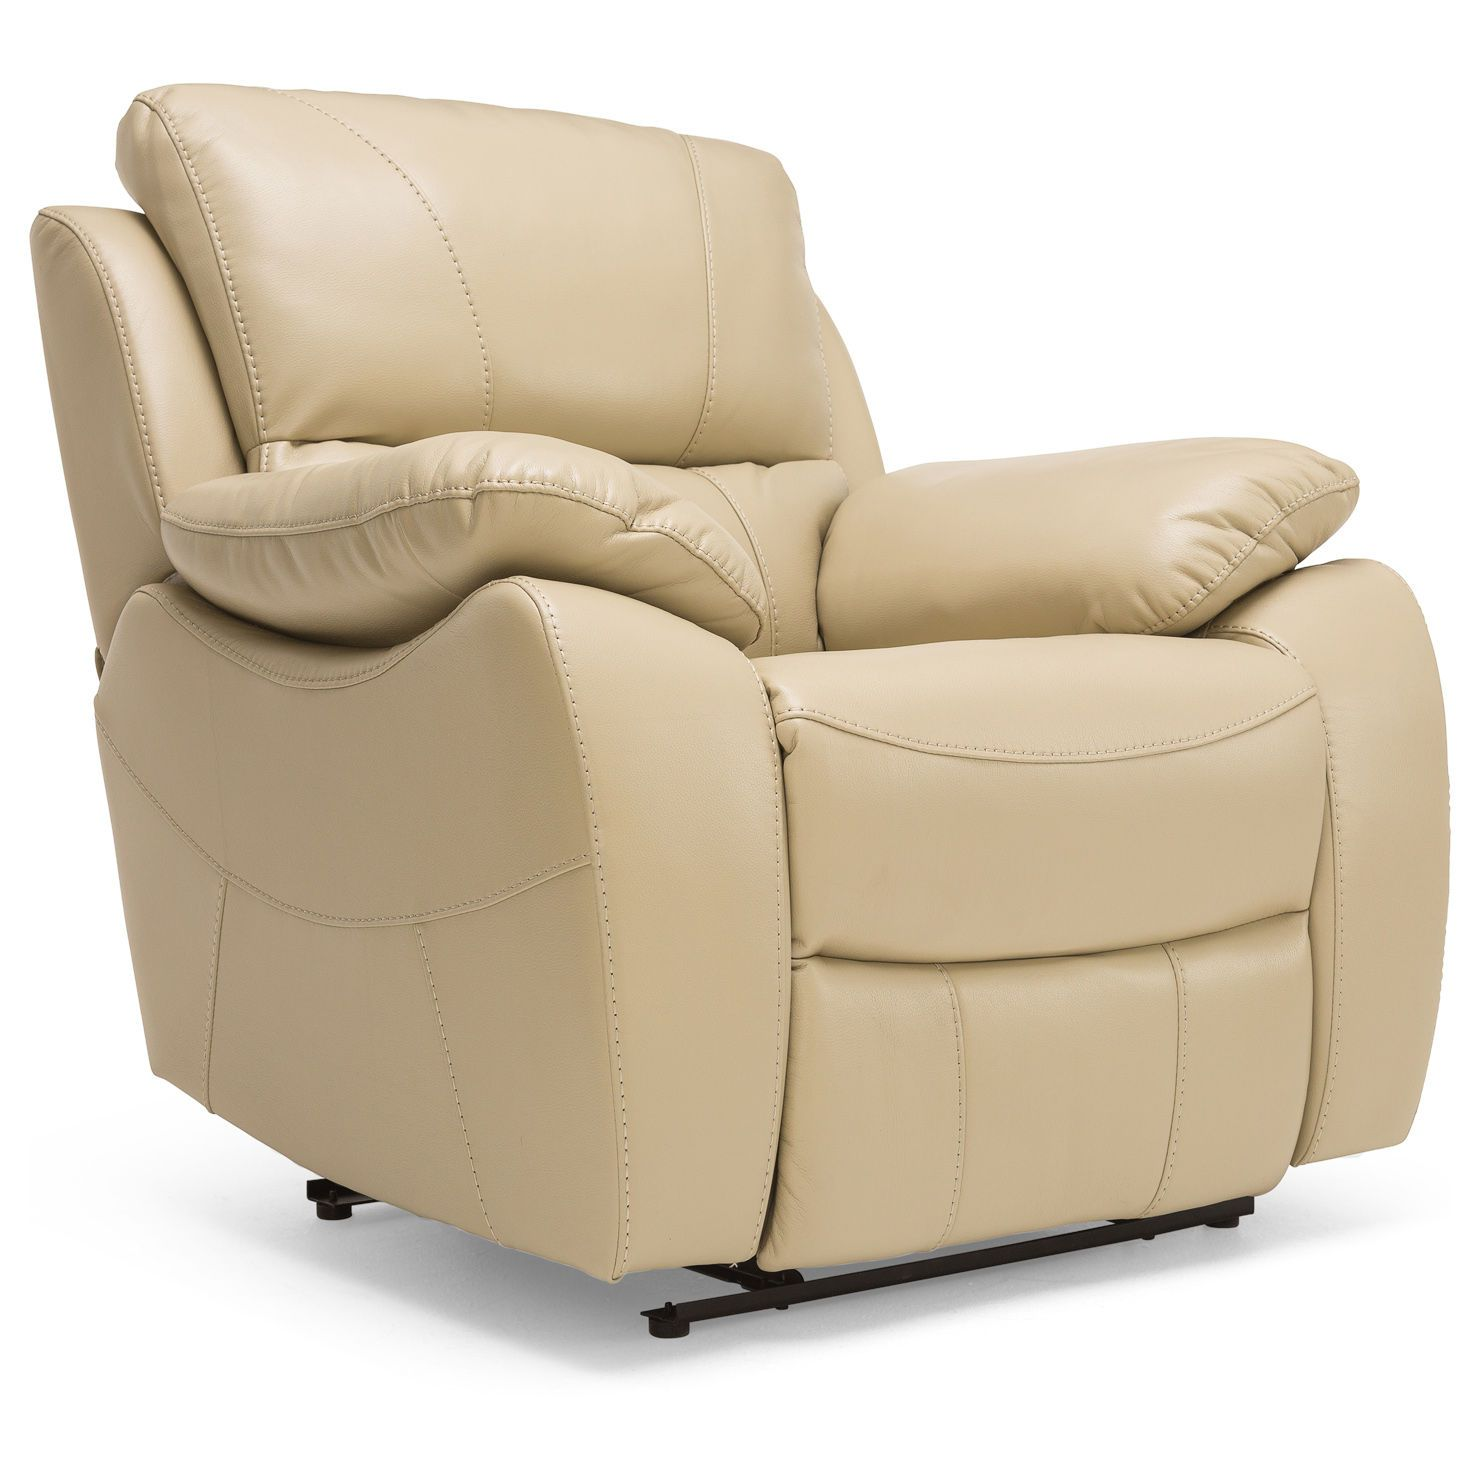 Best Uk Armchairs Armchairs Cheap Armchairs Armchairs Uk 640 x 480